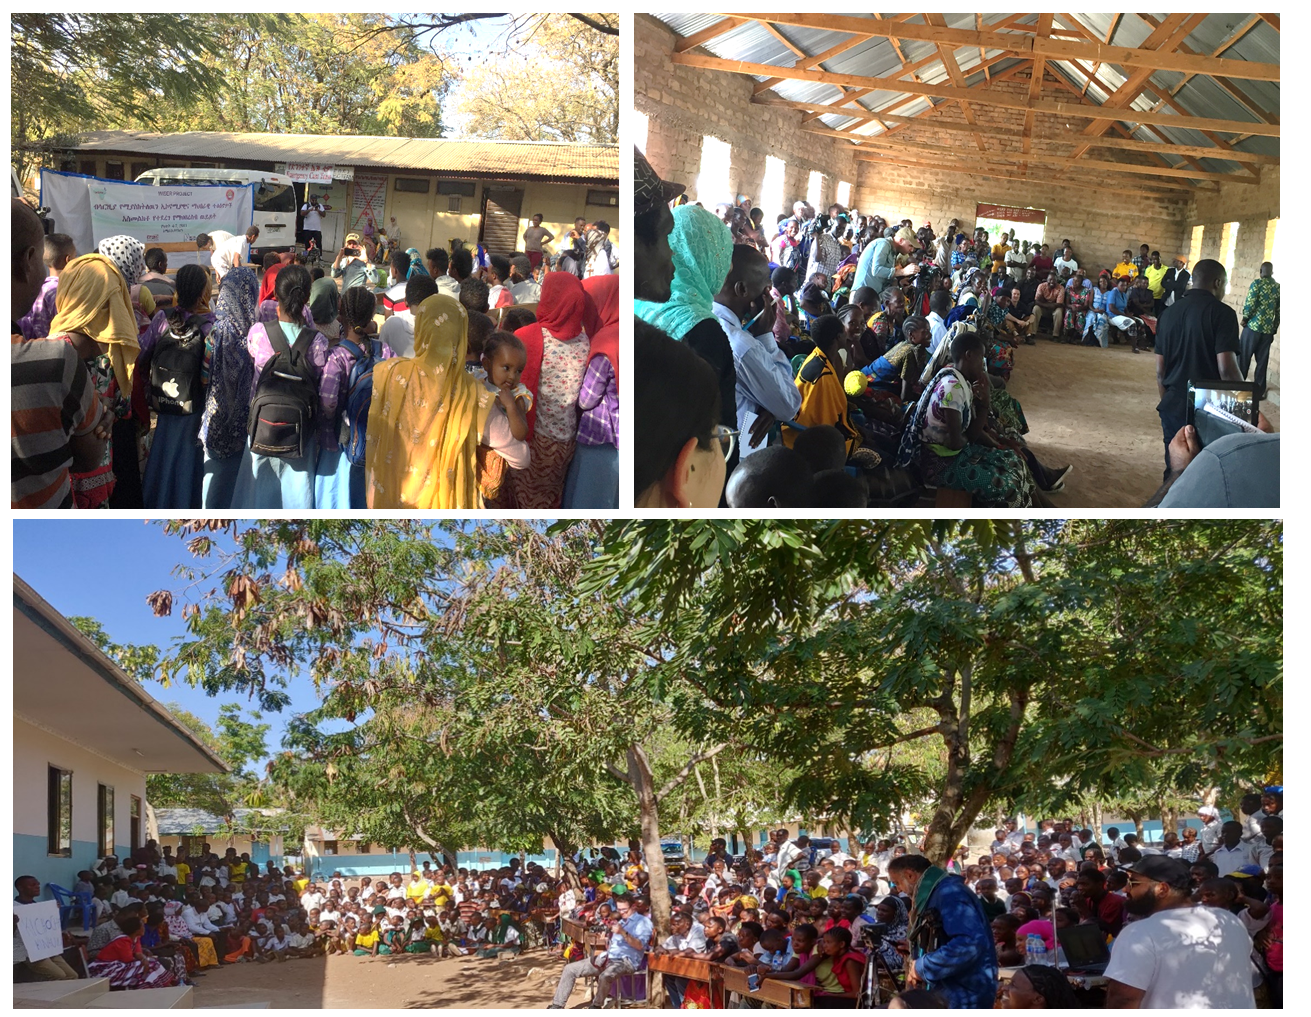 Clockwise from top left is crowd watching drama performance in Kemise, Ethiopia; Mwakalima, Tanzania; and Kigongo, Tanzania